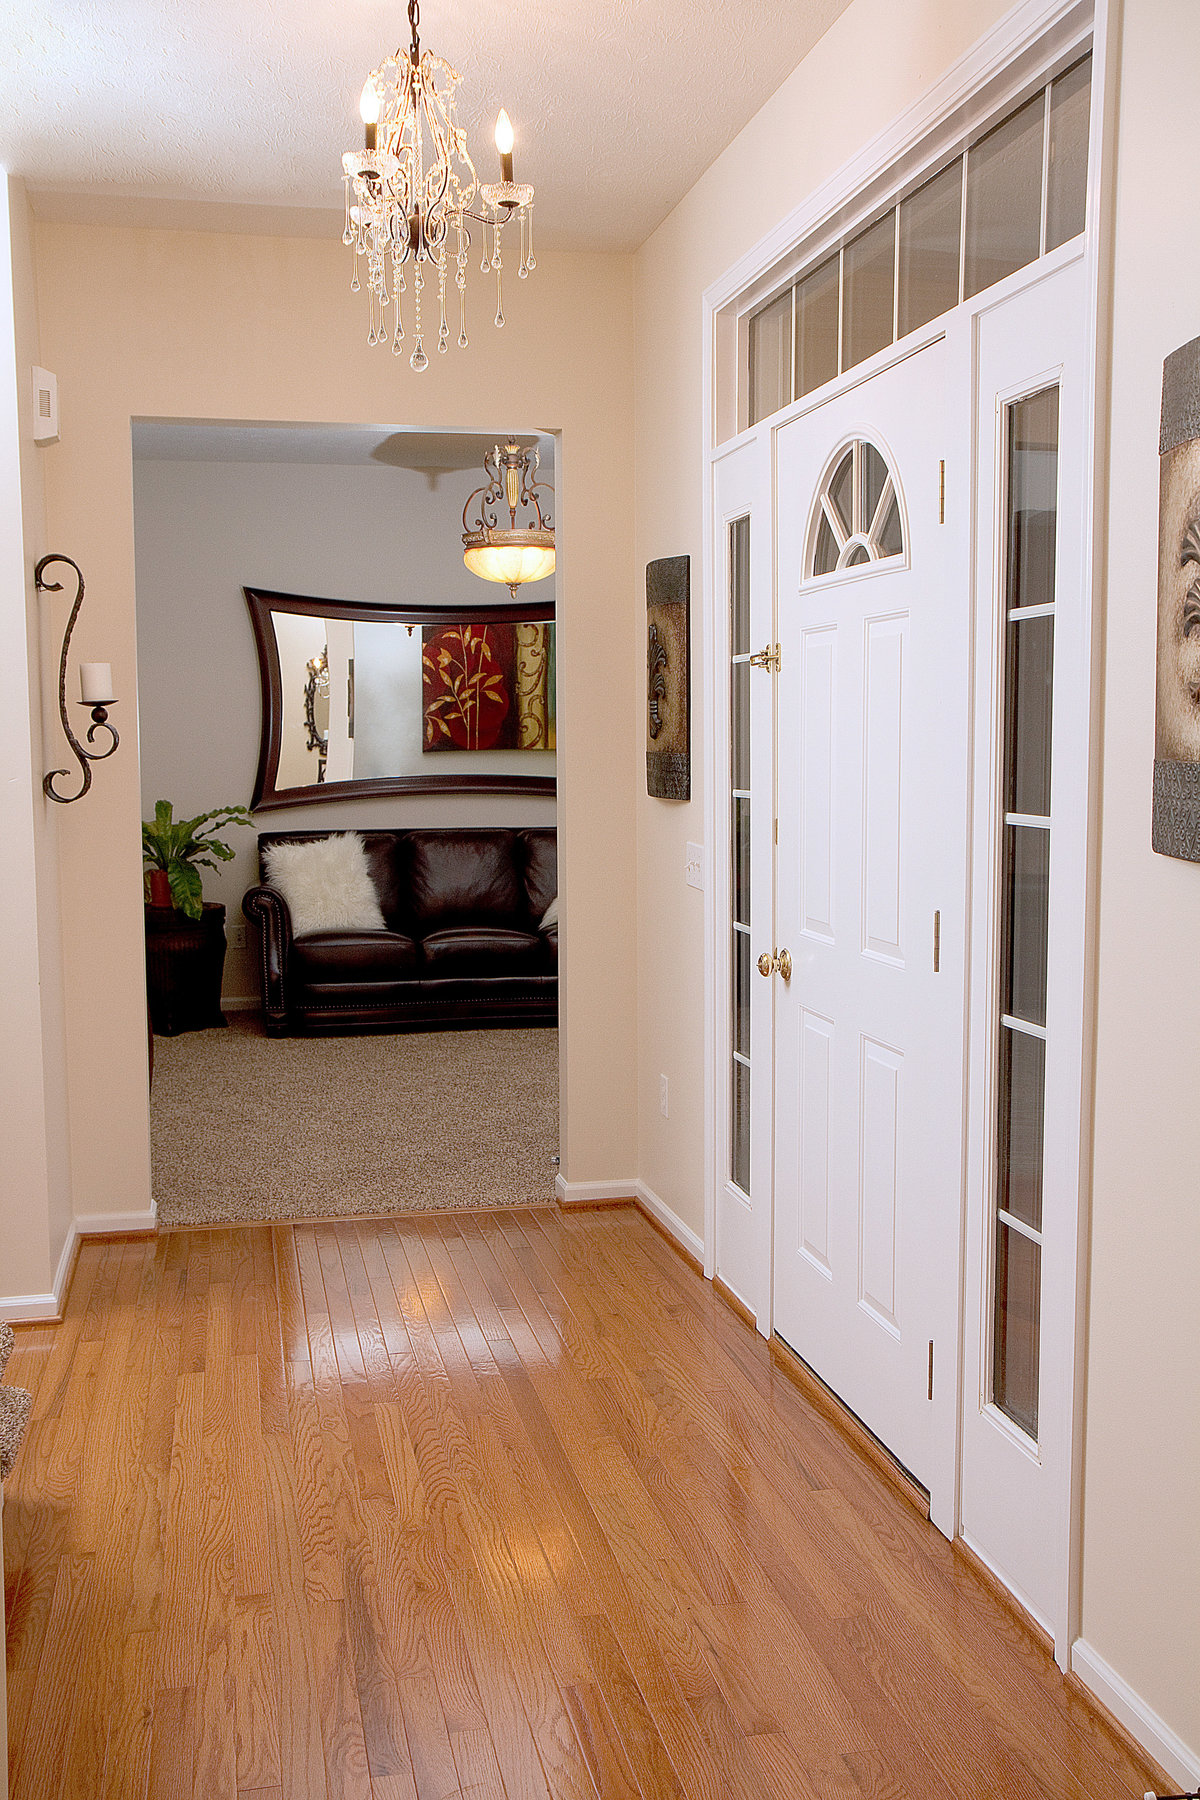 Real Estate Foyer